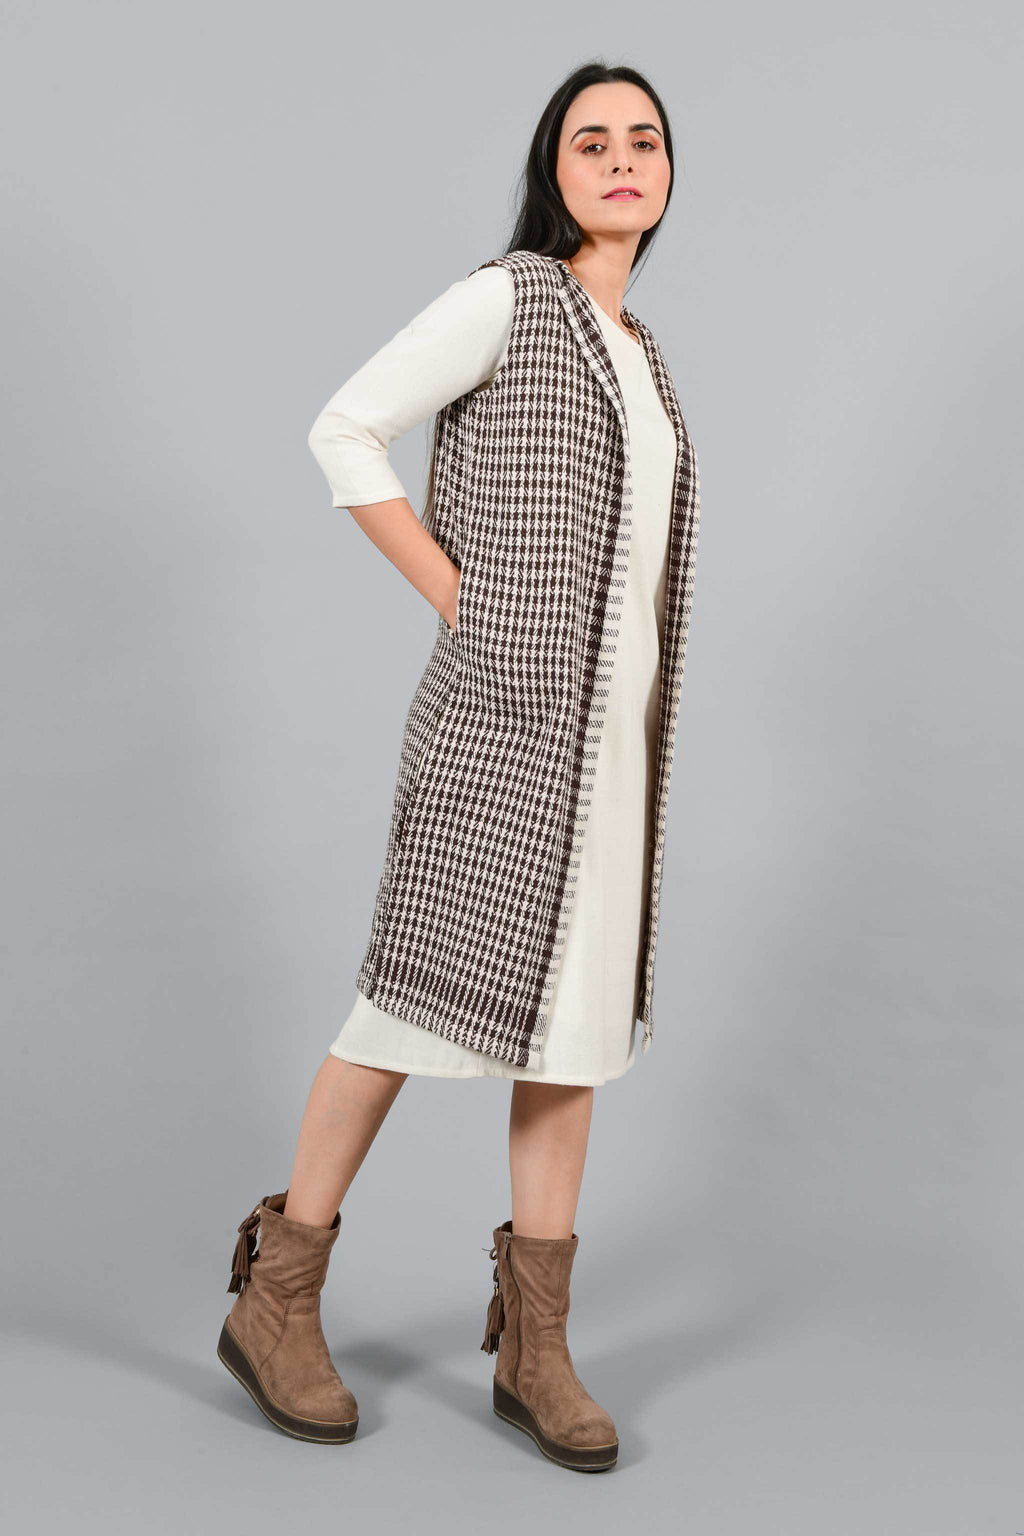 Side pose of an Indian Womenswear female model wearing Kora Brown handspun and handwoven khadi long Jacket over an off-white cashmere cotton dress by Cotton Rack.